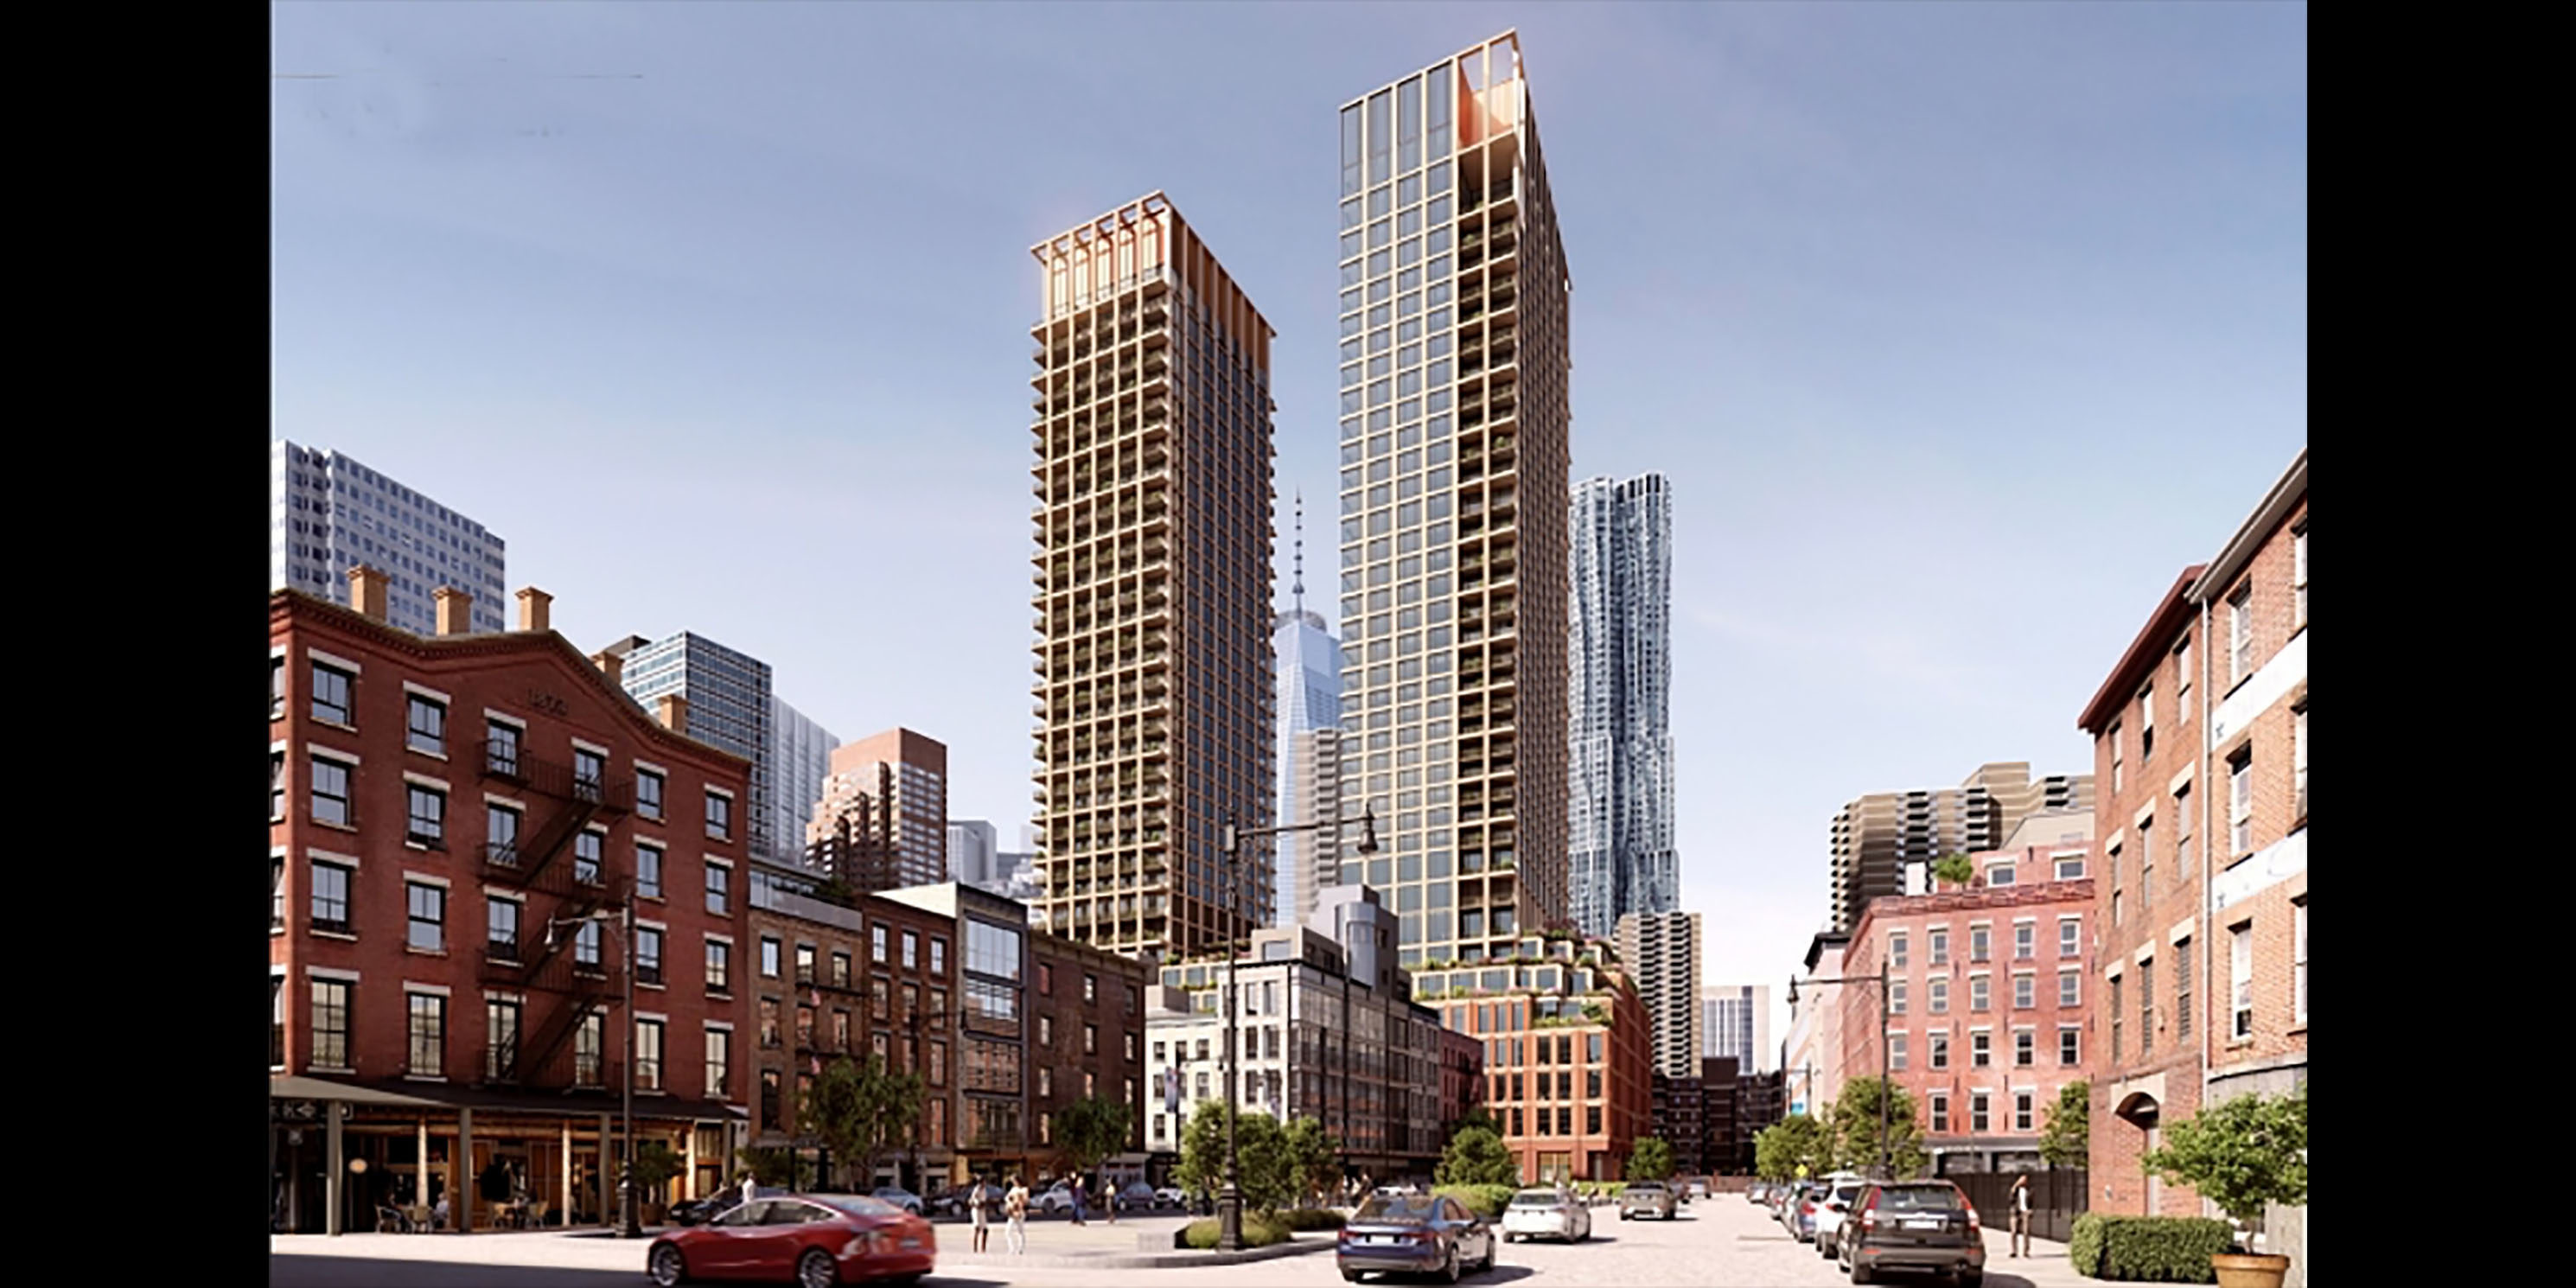 rendering of a proposed design for 250 Water Street in Manhattan